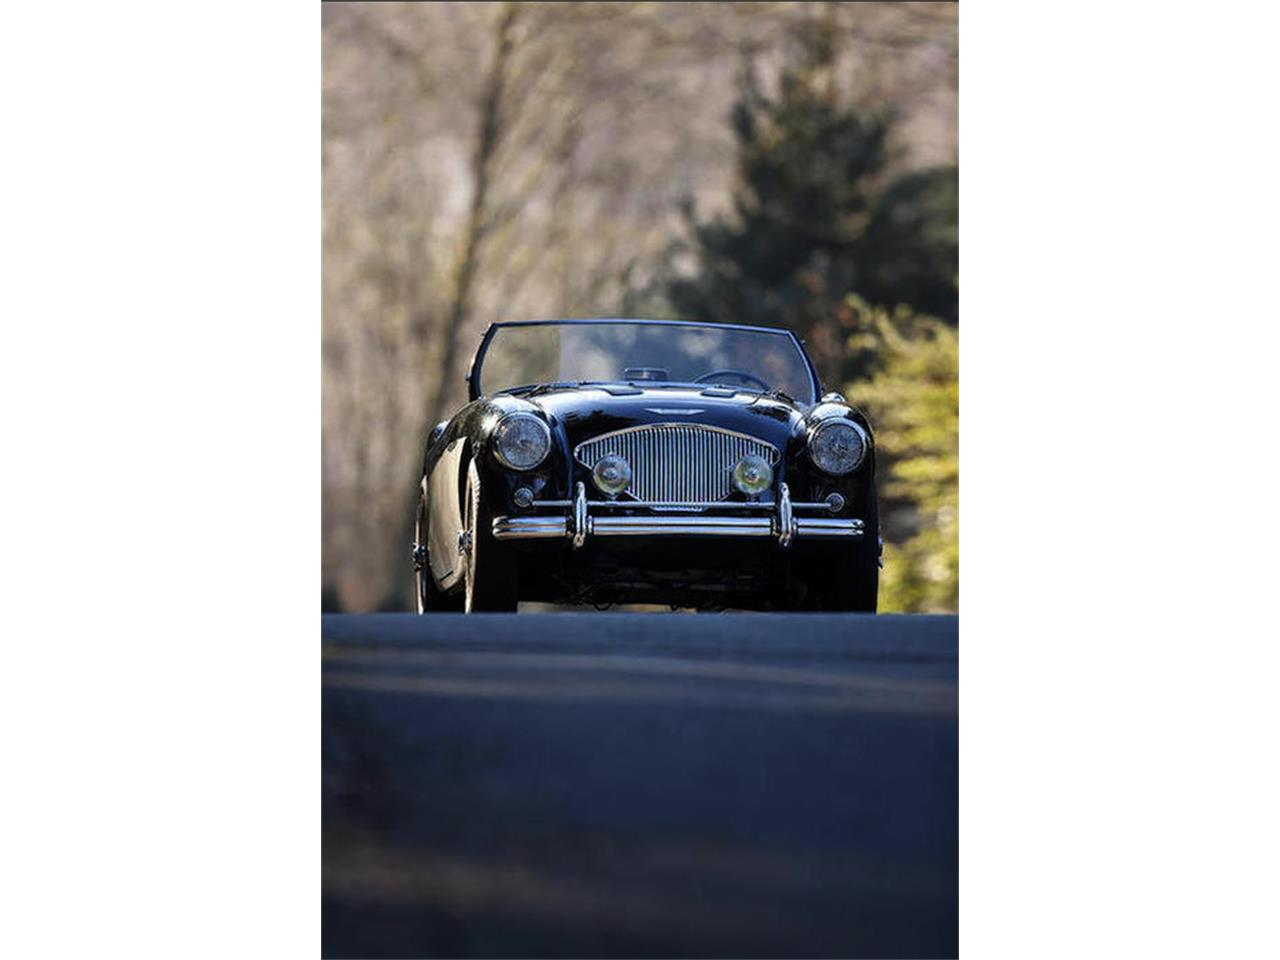 Large Picture of Classic 1955 Austin-Healey 100-4 located in Minneapolis Minnesota - $89,900.00 - LT01